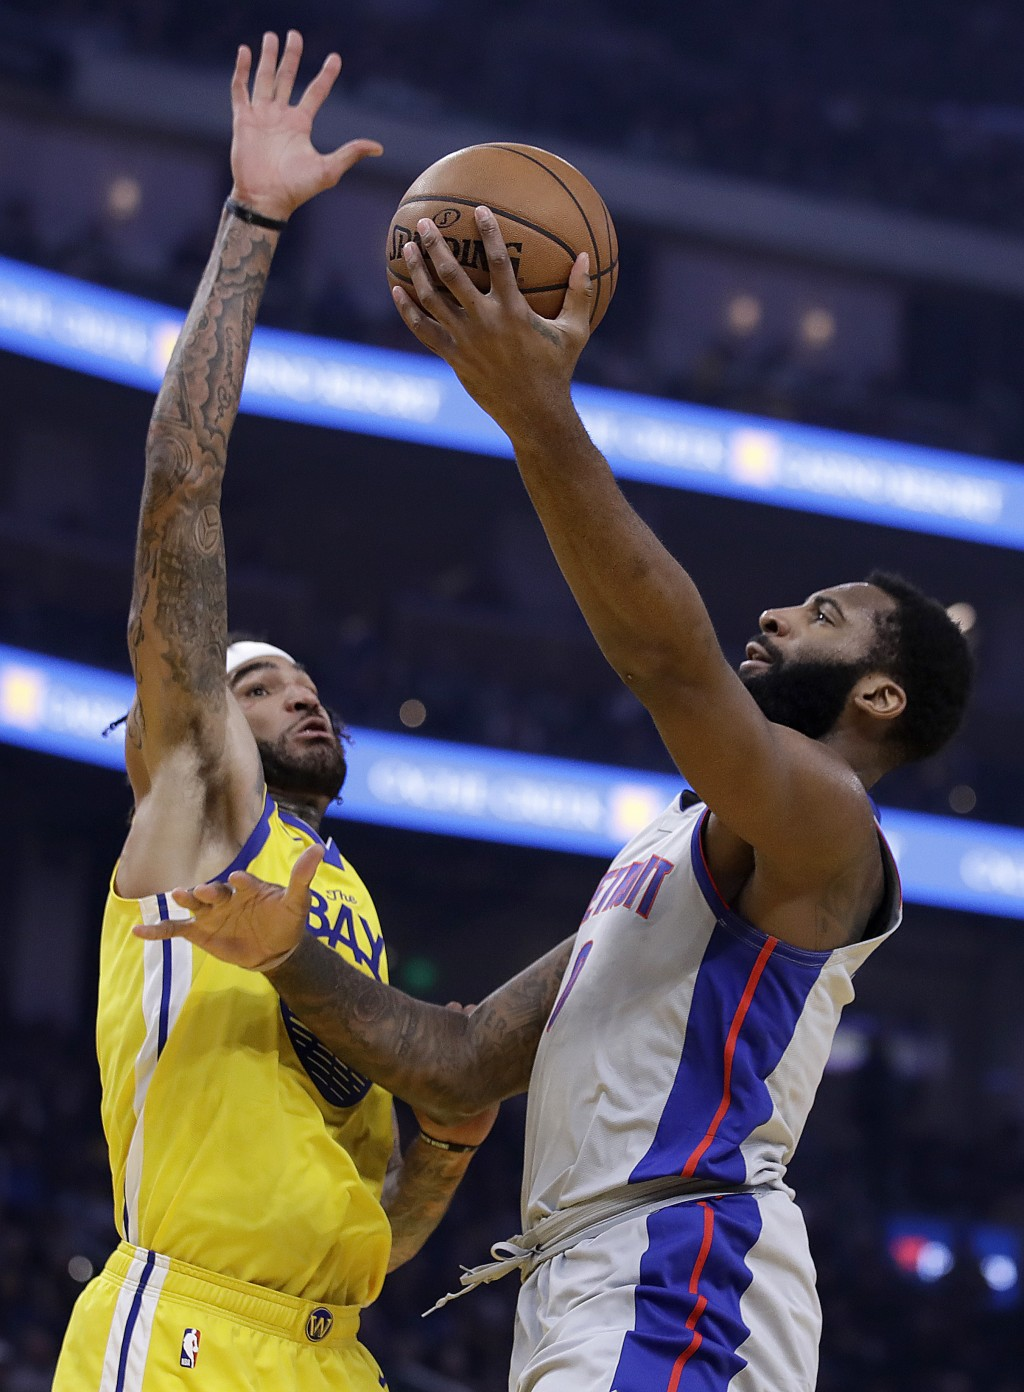 Detroit Pistons' Andre Drummond, right, lays up a shot against Golden State Warriors' Willie Cauley-Stein during the first half of an NBA basketball g...